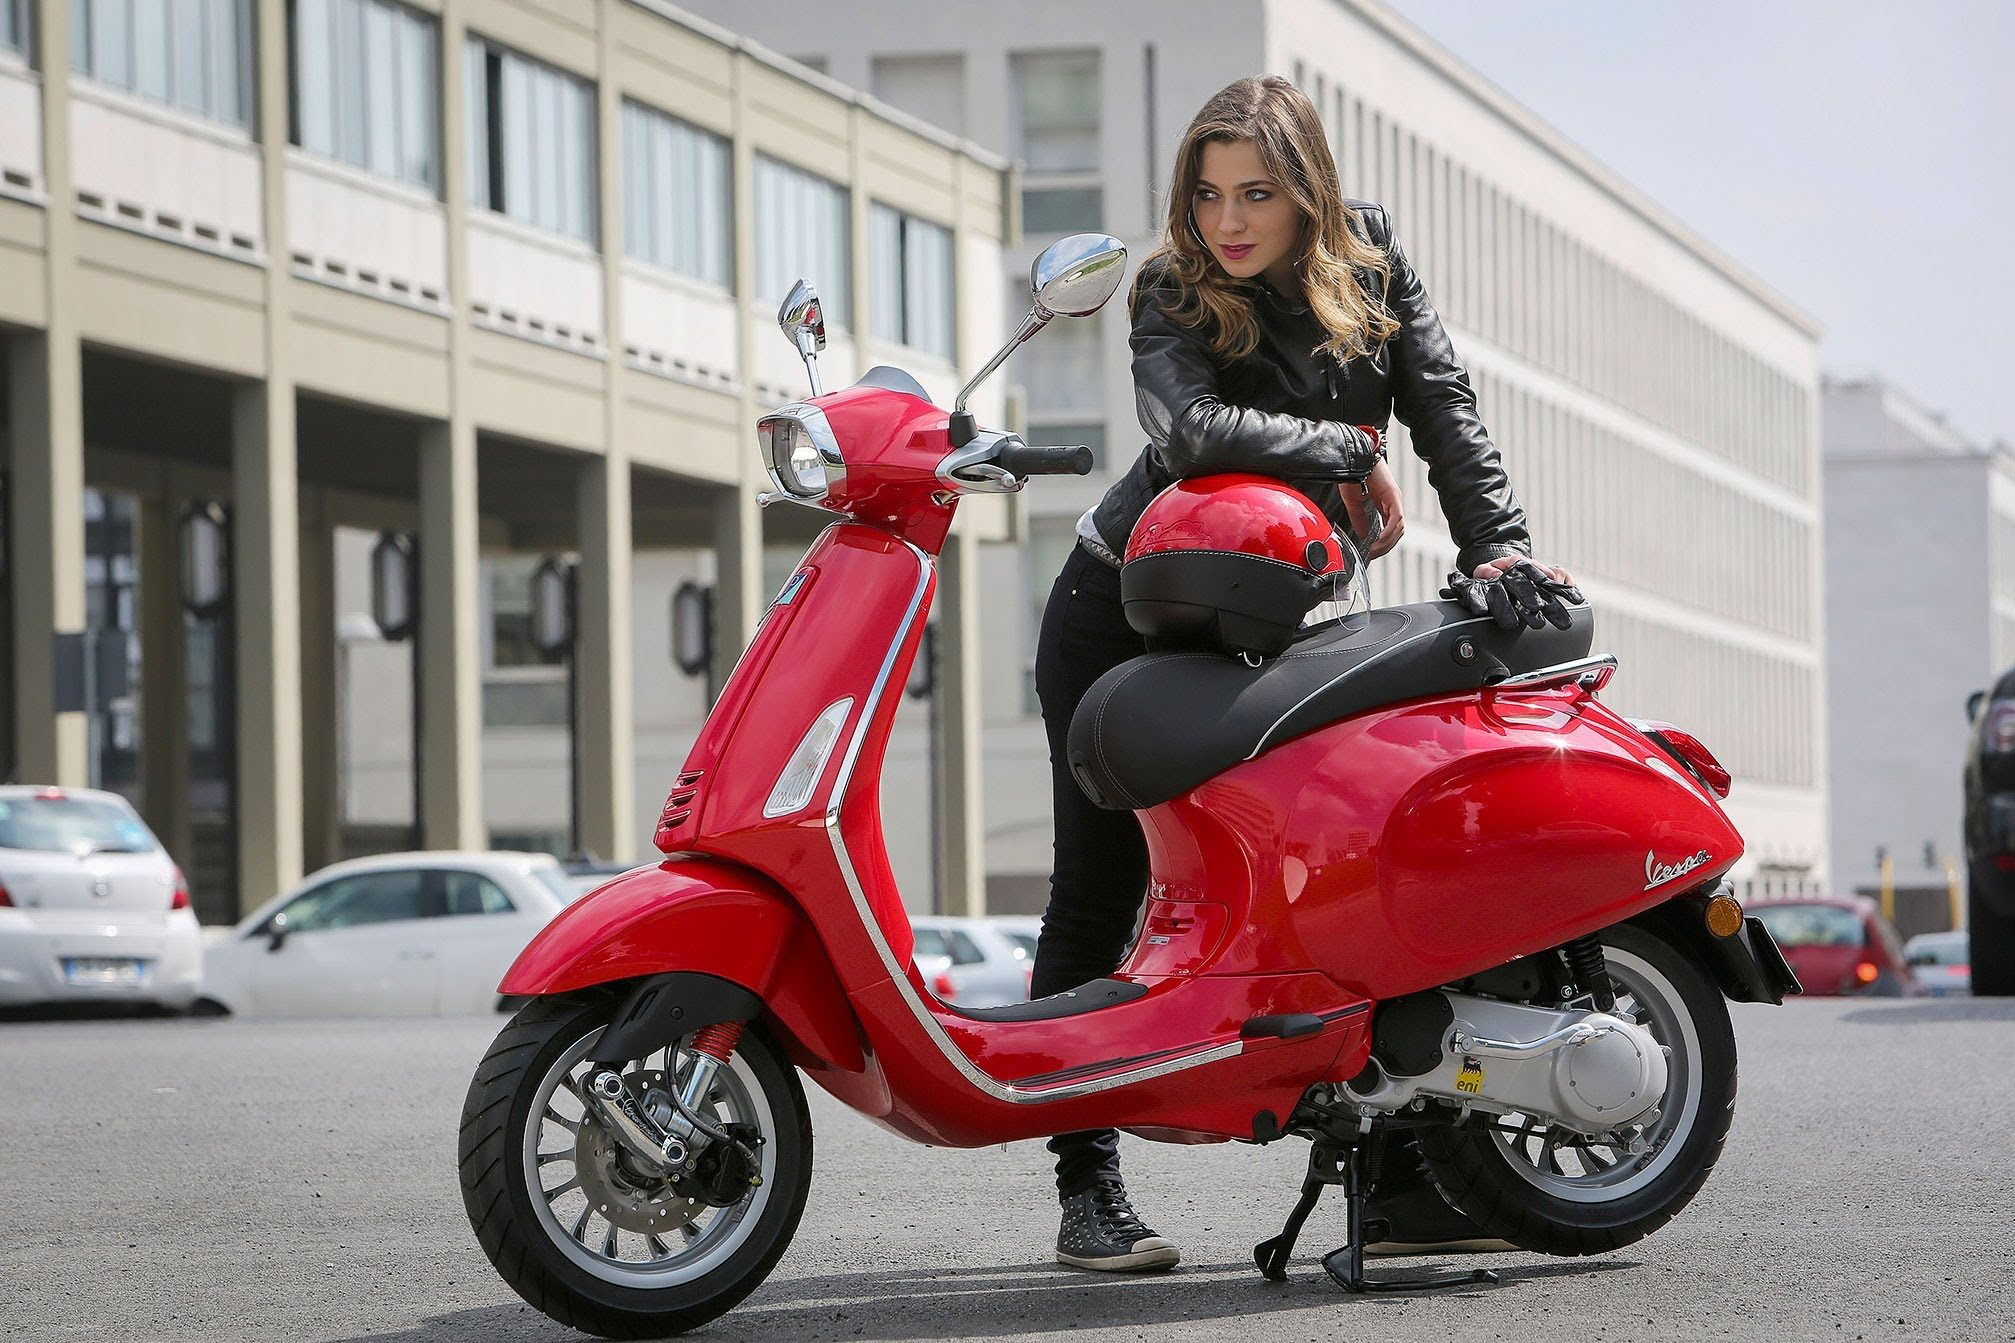 Vespa LX125 Scooter Rider Girl